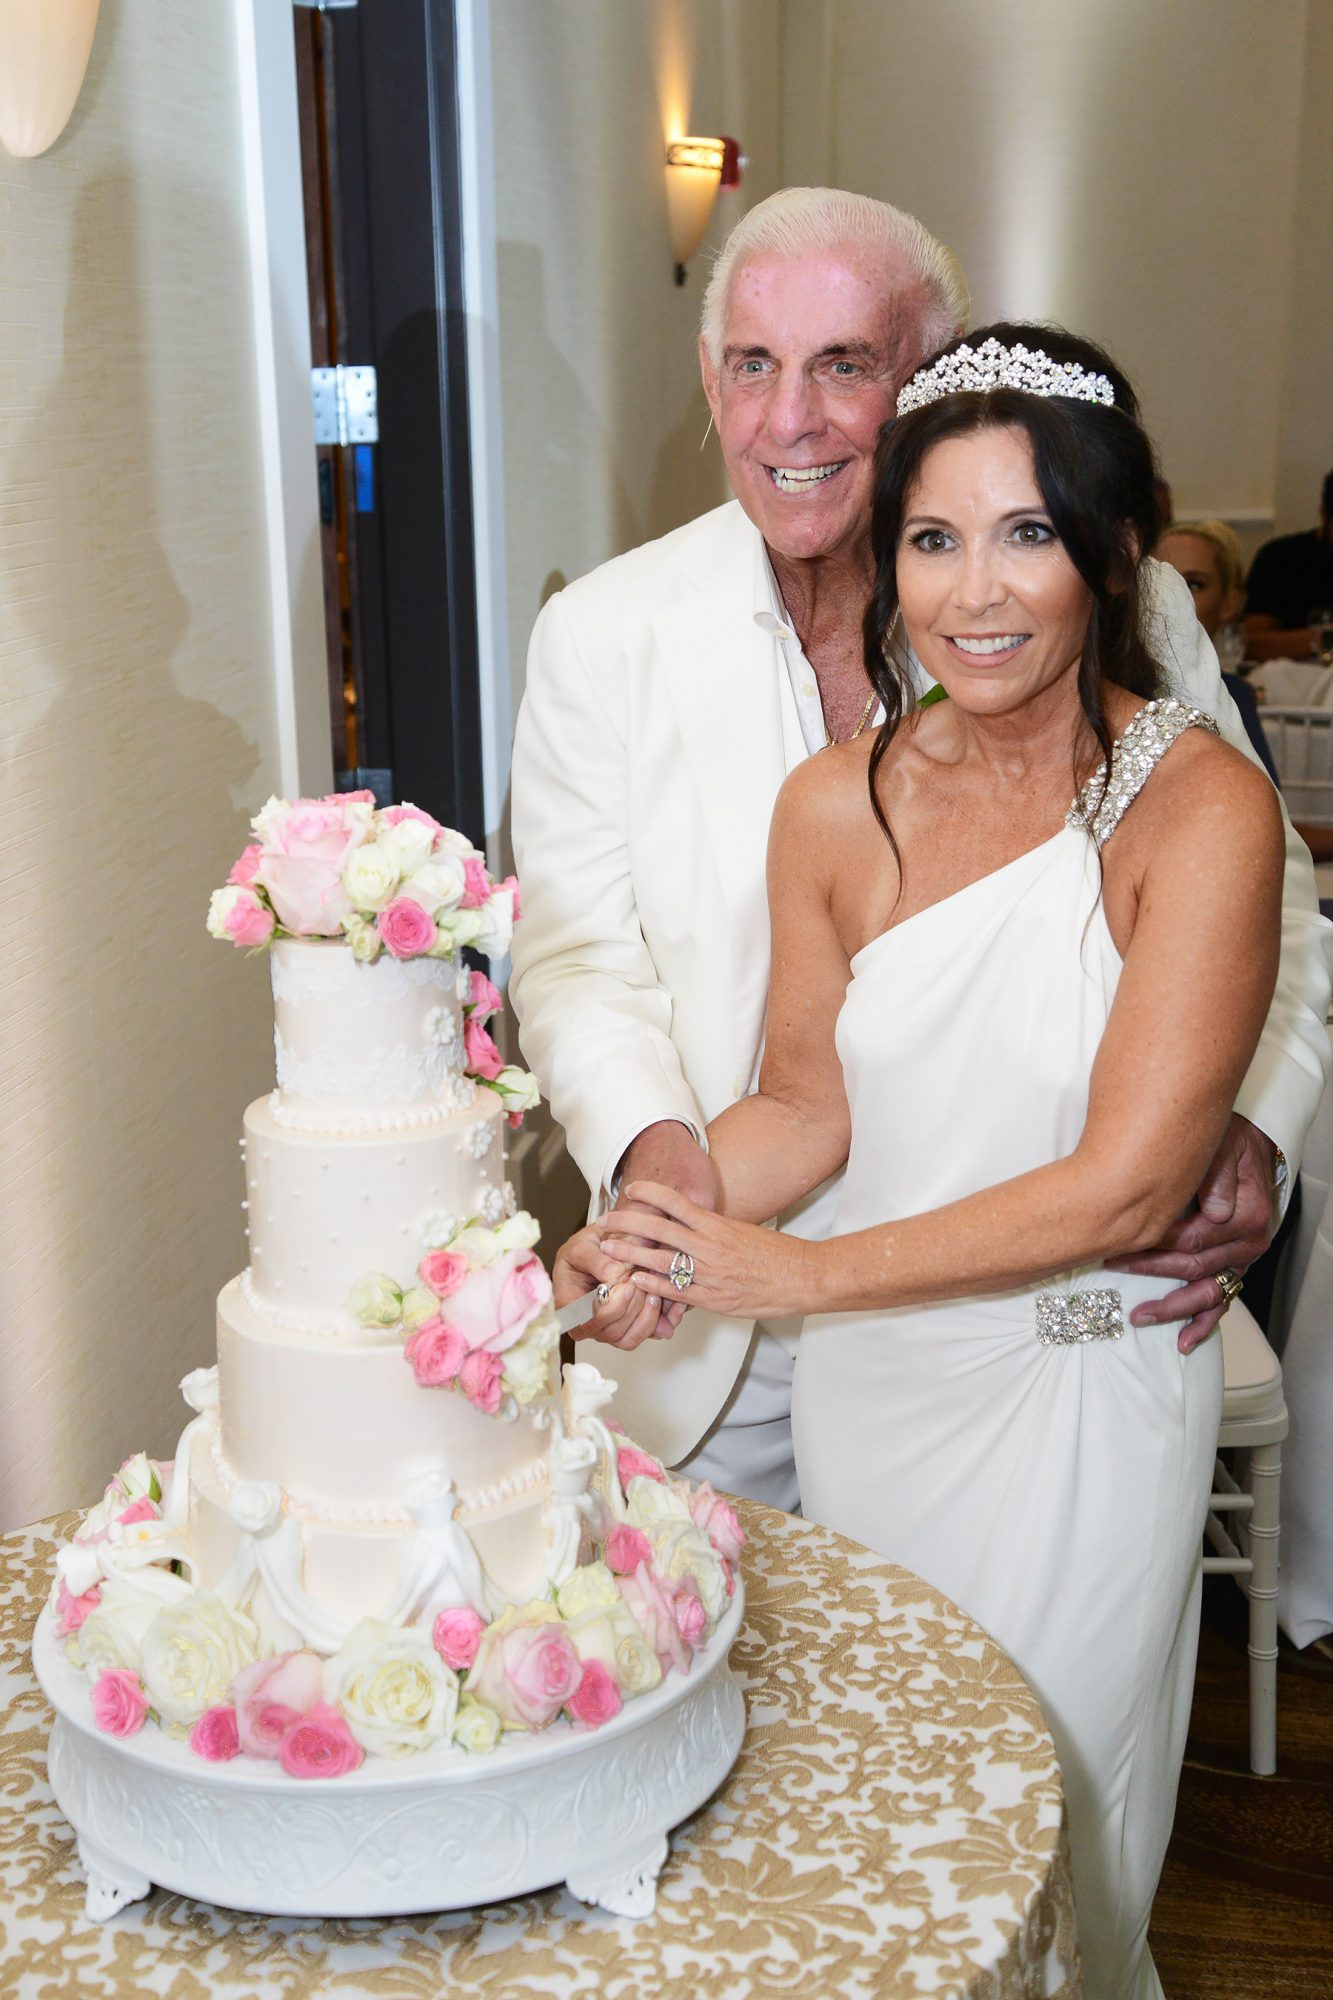 EXCLUSIVE: Ric Flair Weds Wendy Barlow at The Pearl Hotel in Rosemary Beach, Florida.